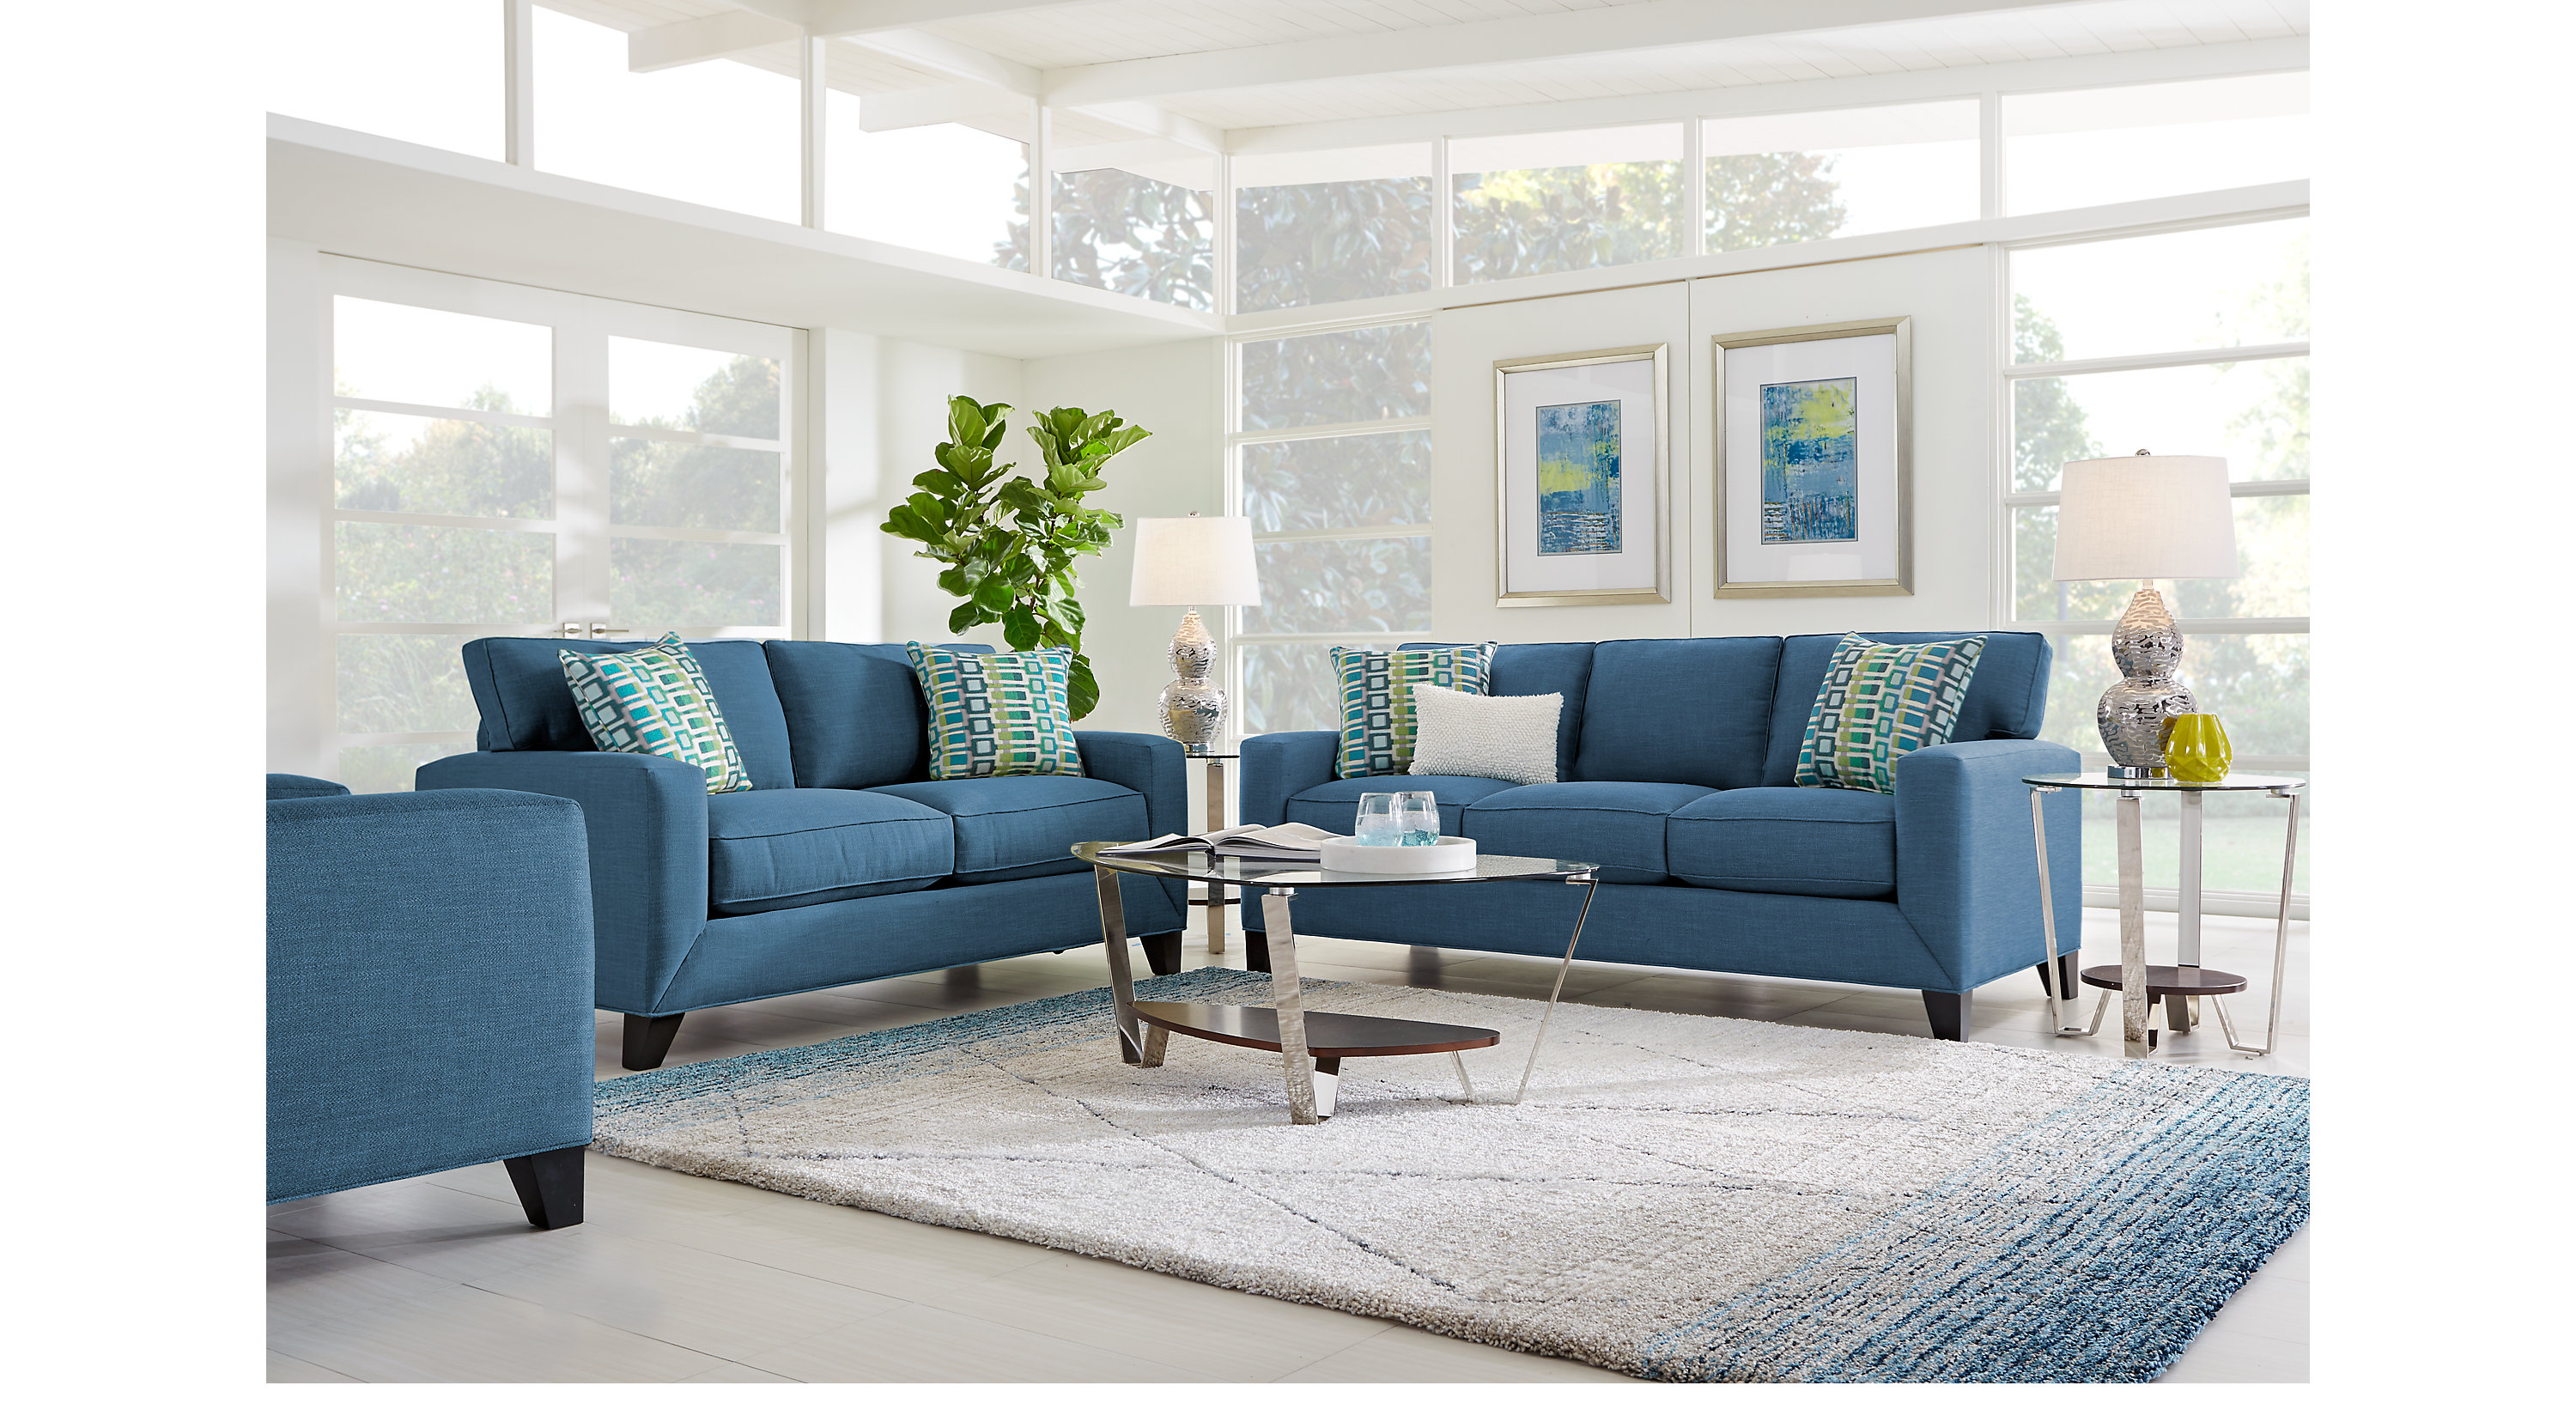 1 577 00 Delancey Denim Indigo 5 Pc Living Room Classic Contemporary Textured